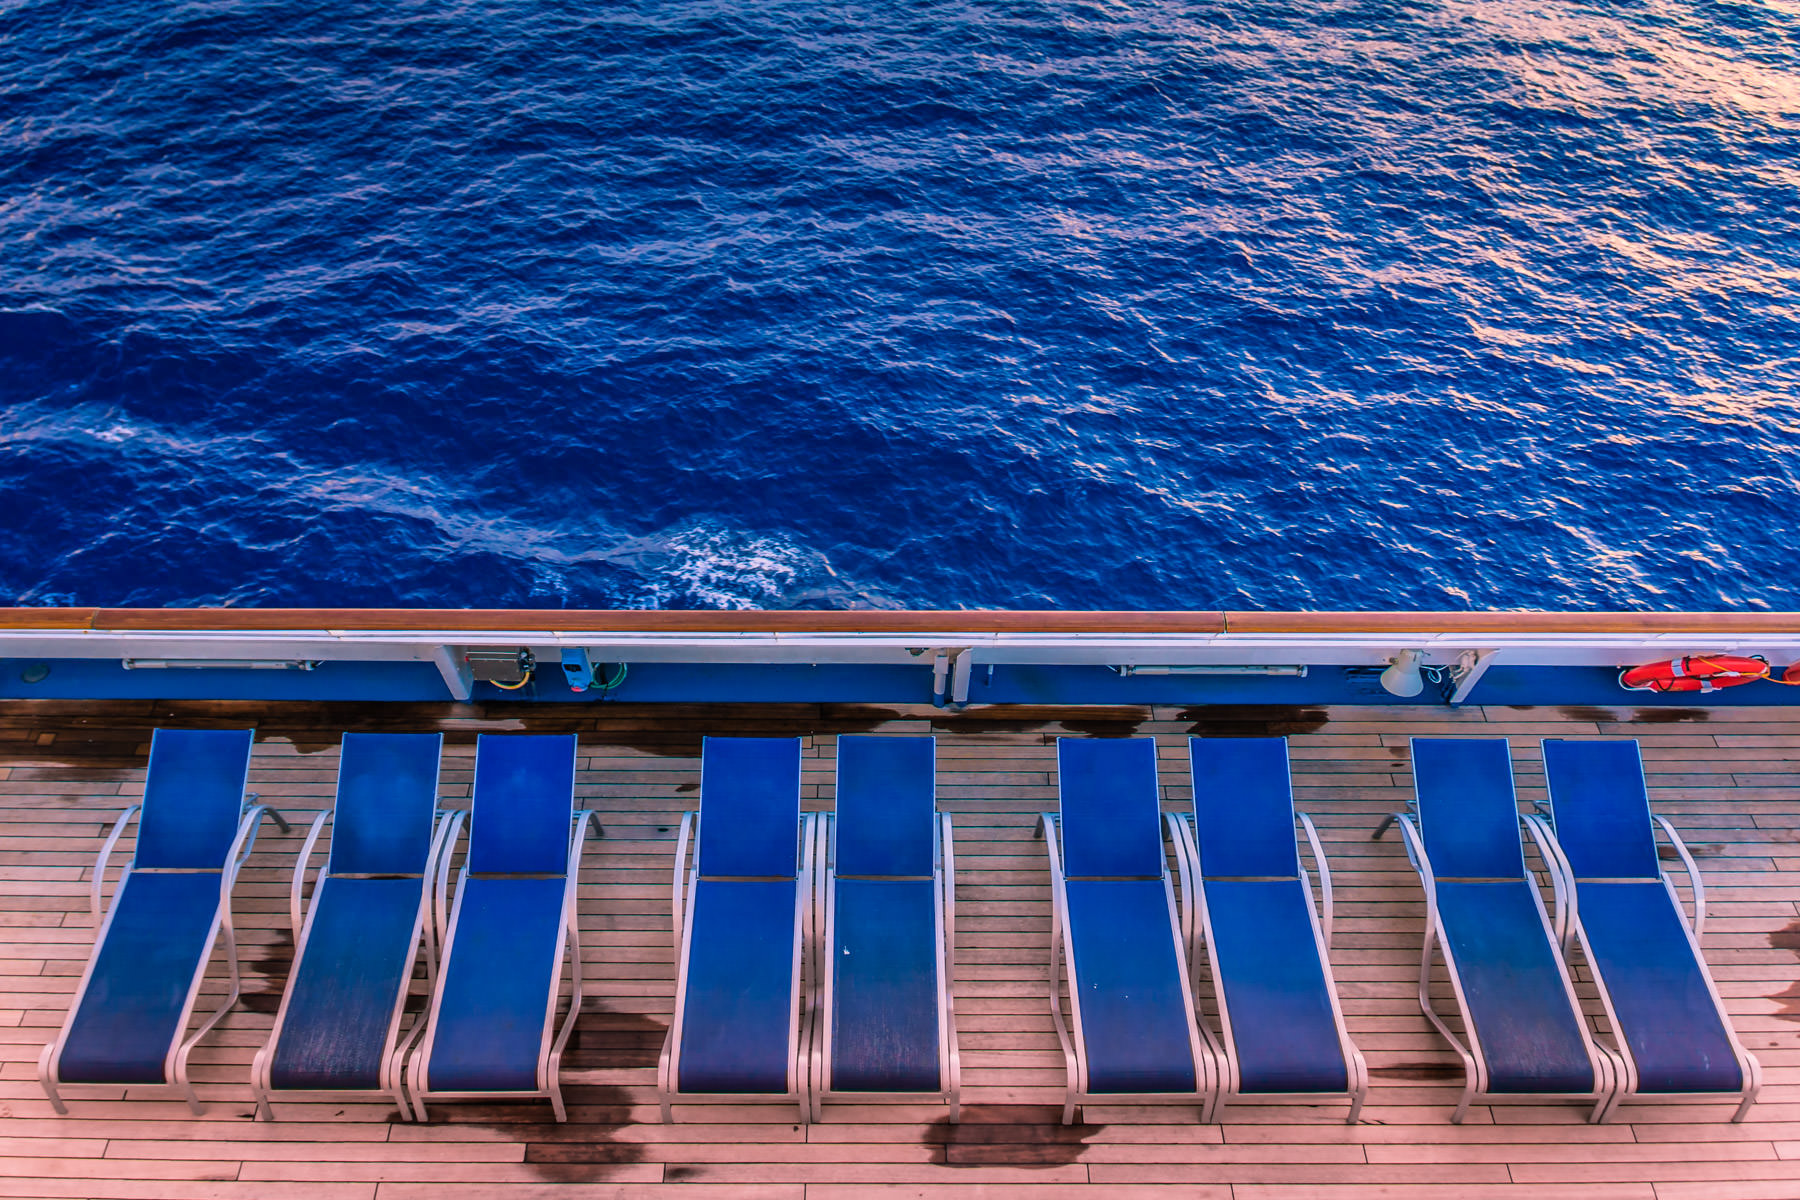 Chaise longues aboard the cruise ship Carnival Triumph, somewhere in the Gulf of Mexico.